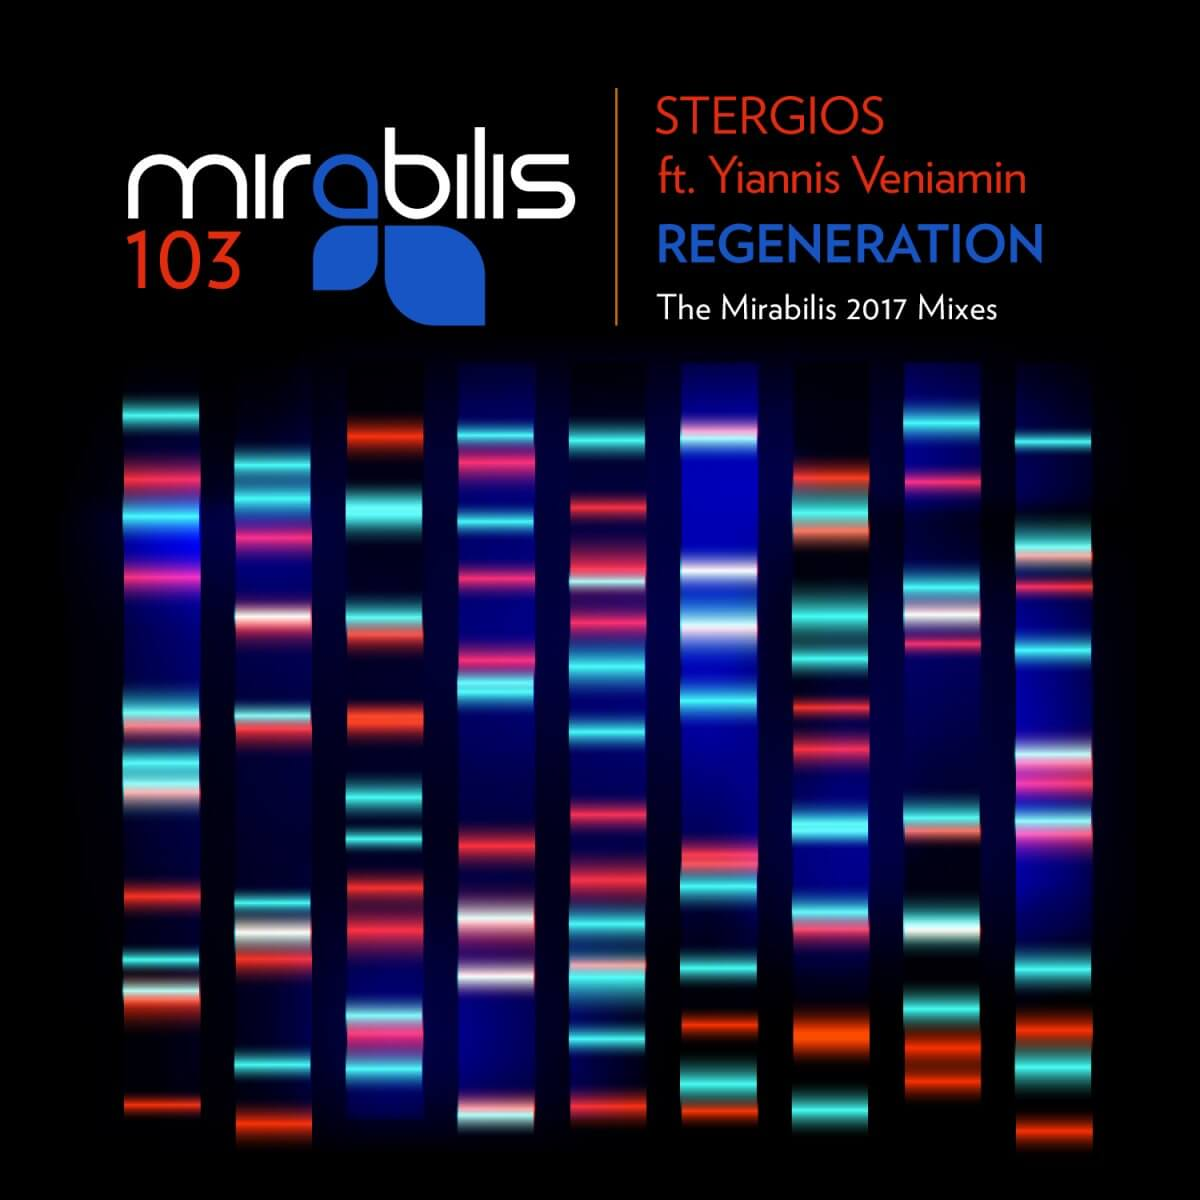 STERGIOS---REGENERATION-ft.-Yiannis-Veniamin-The-Mirabilis-2017-Mixes.